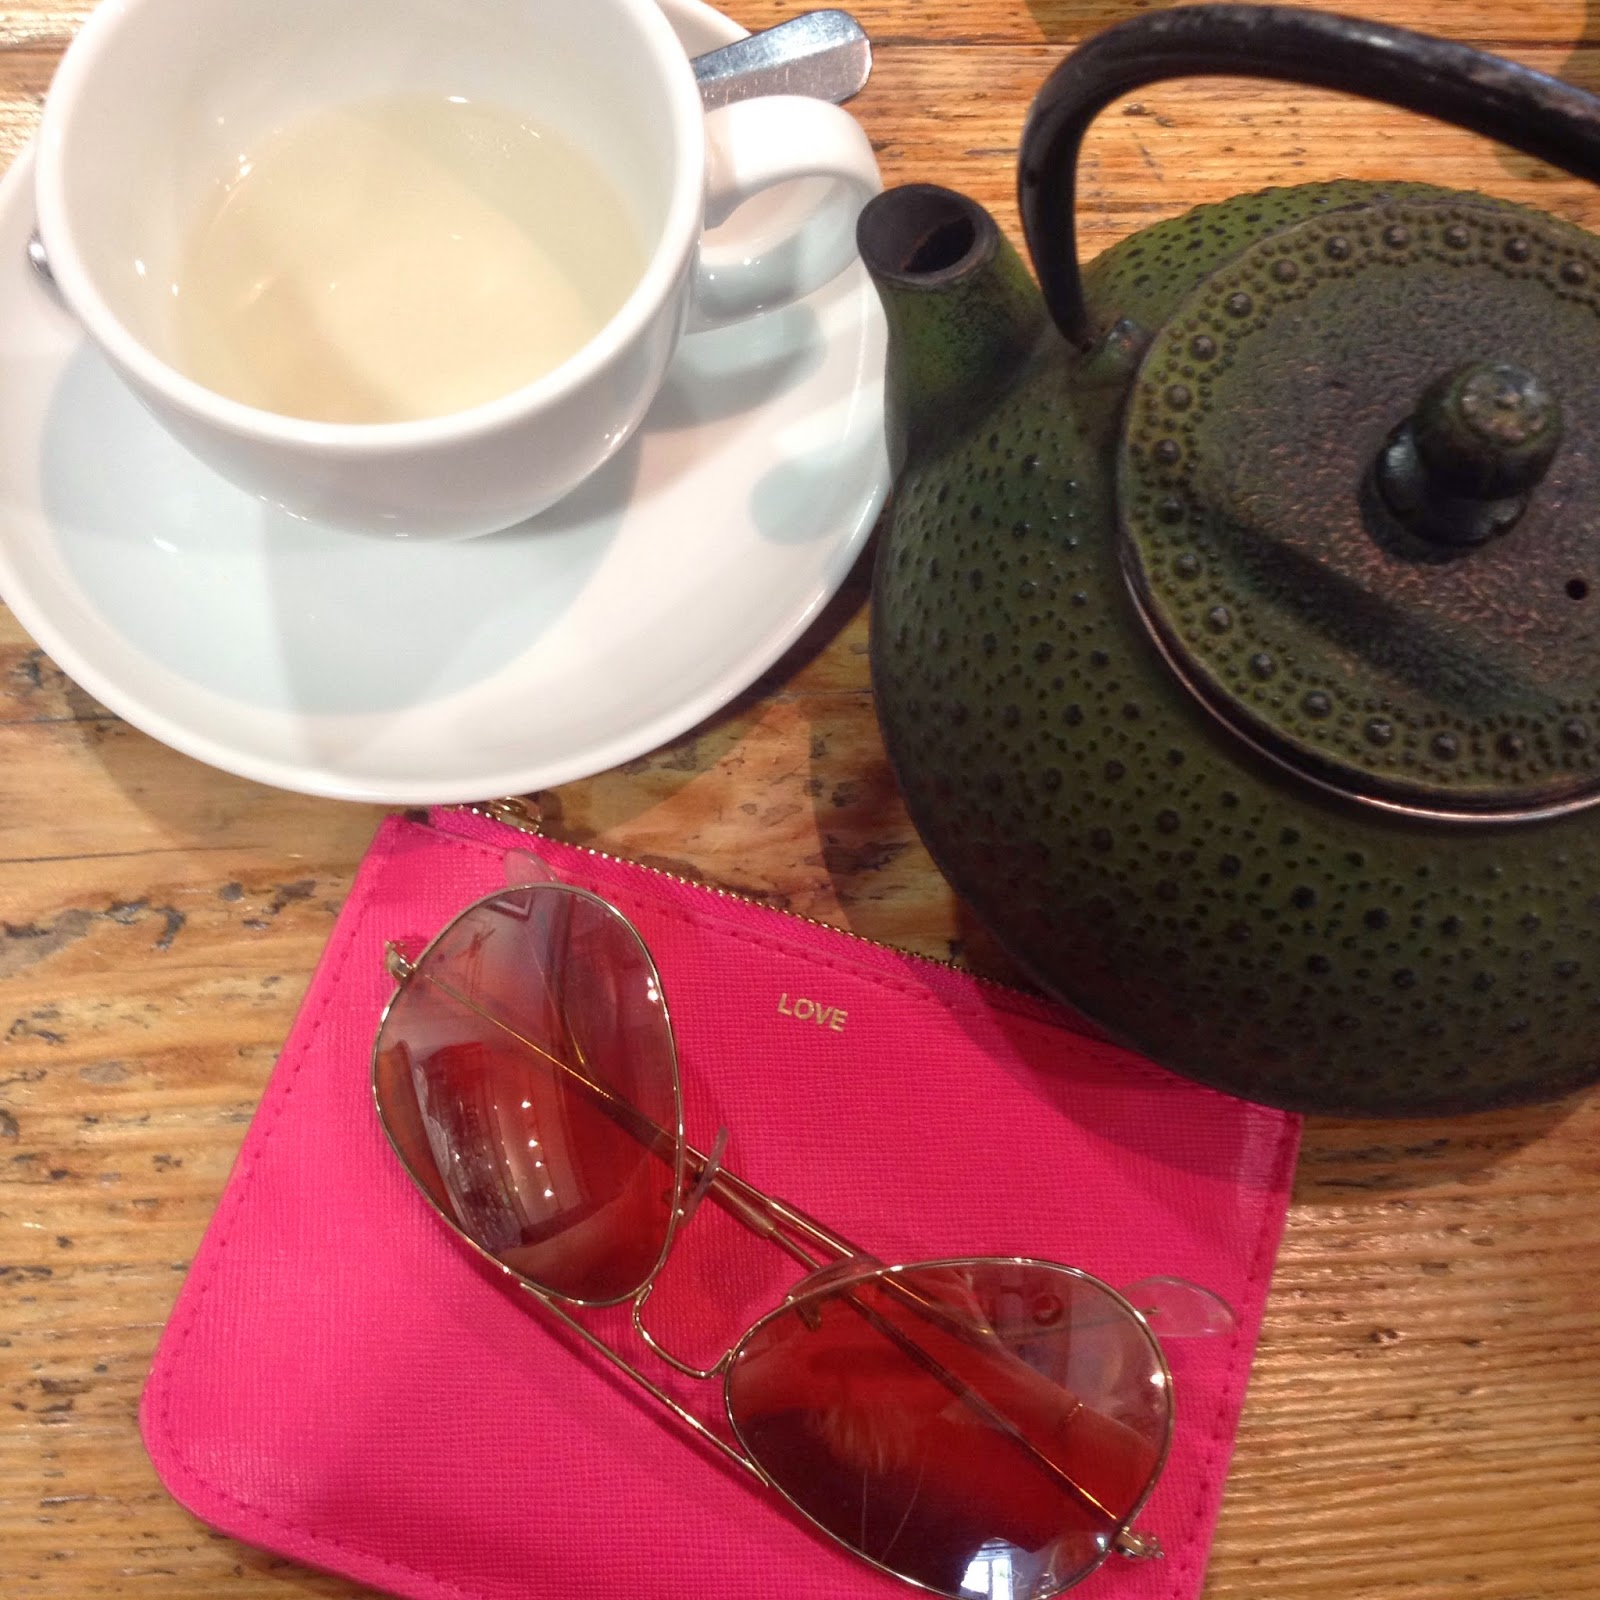 202 restaurant, 202 cafe, 202 notting hill, hm purse, rayban, aviator sunglasses, green tea, tea pot, chinese tea pot, lbloggers, fbloggers